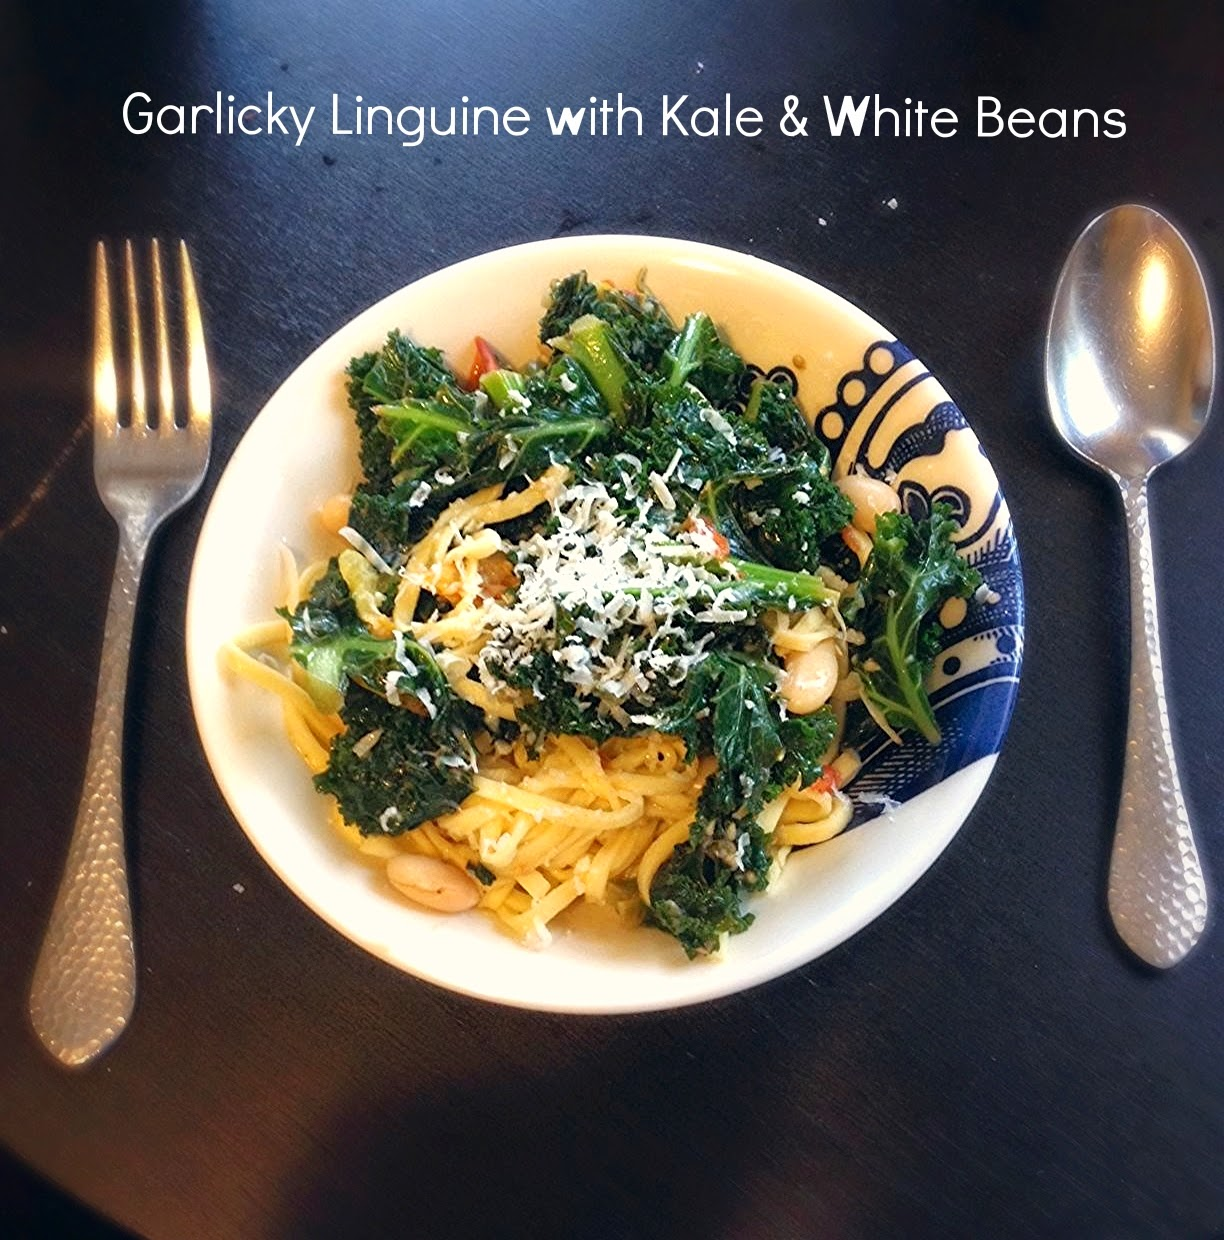 Meatless Monday: Garlicky Linguine with Kale & White Beans | hardparade.blogspot.com